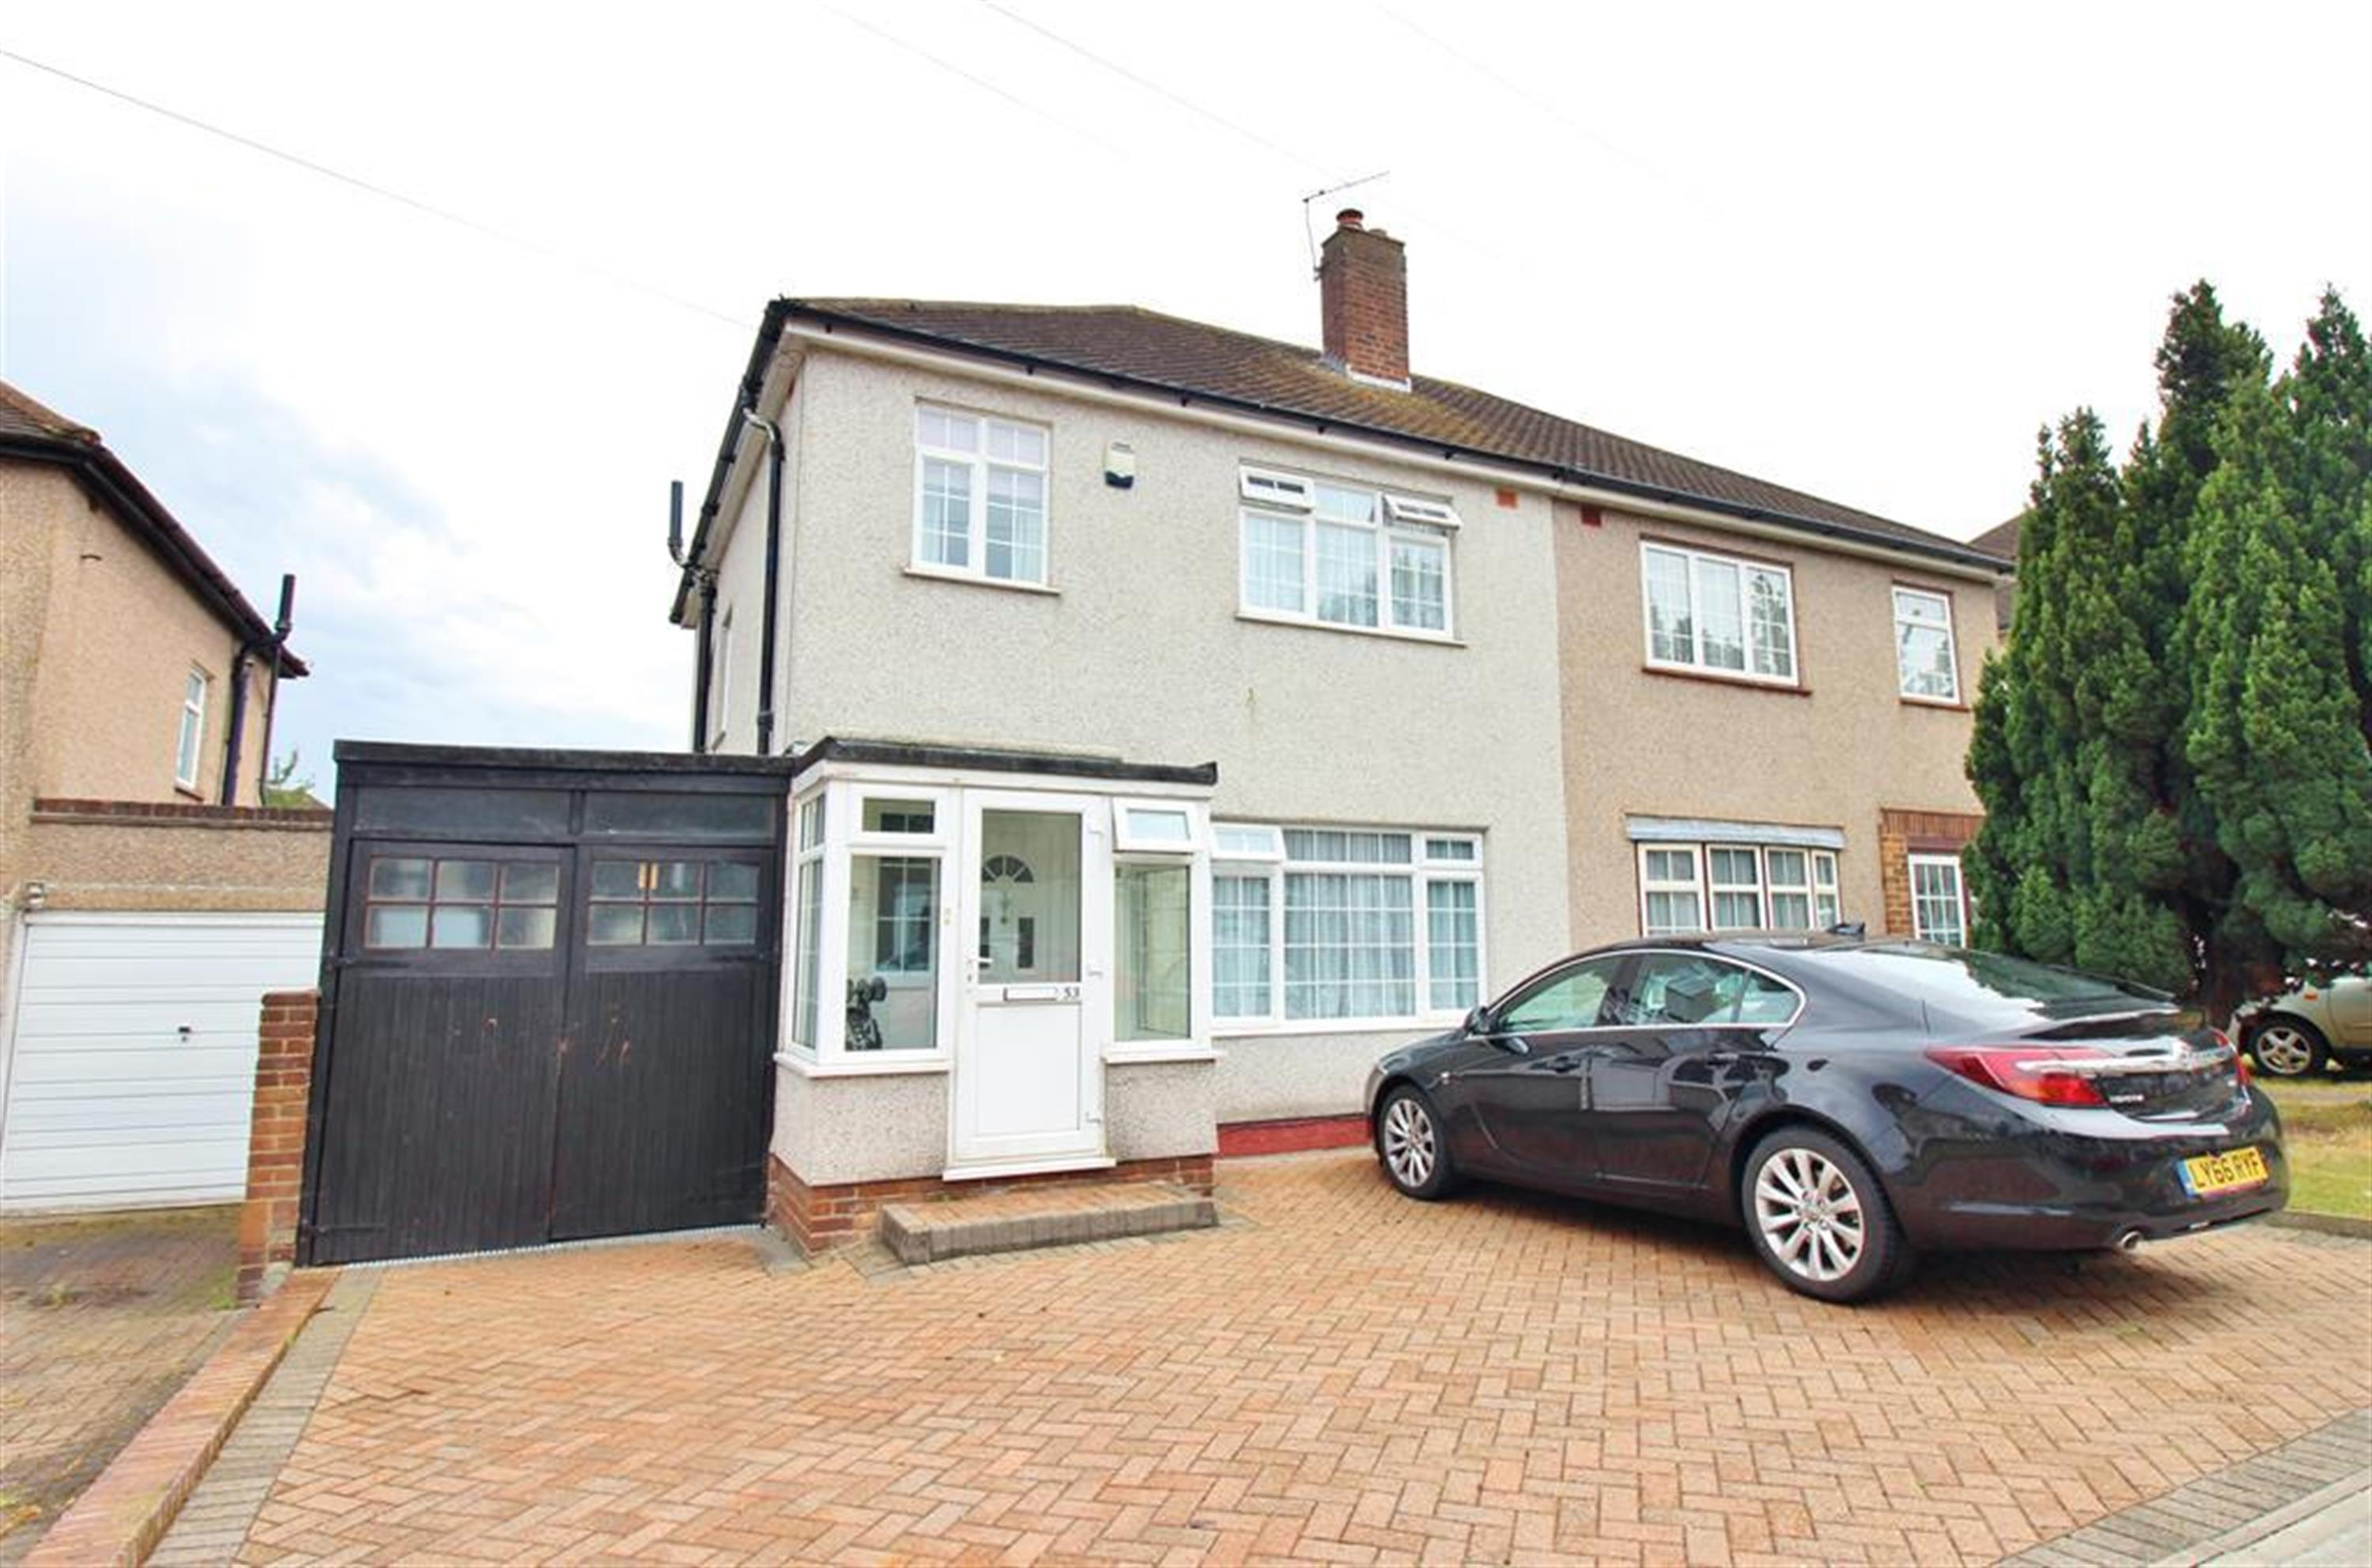 Eastry Road, Erith, Kent, DA8 1NW